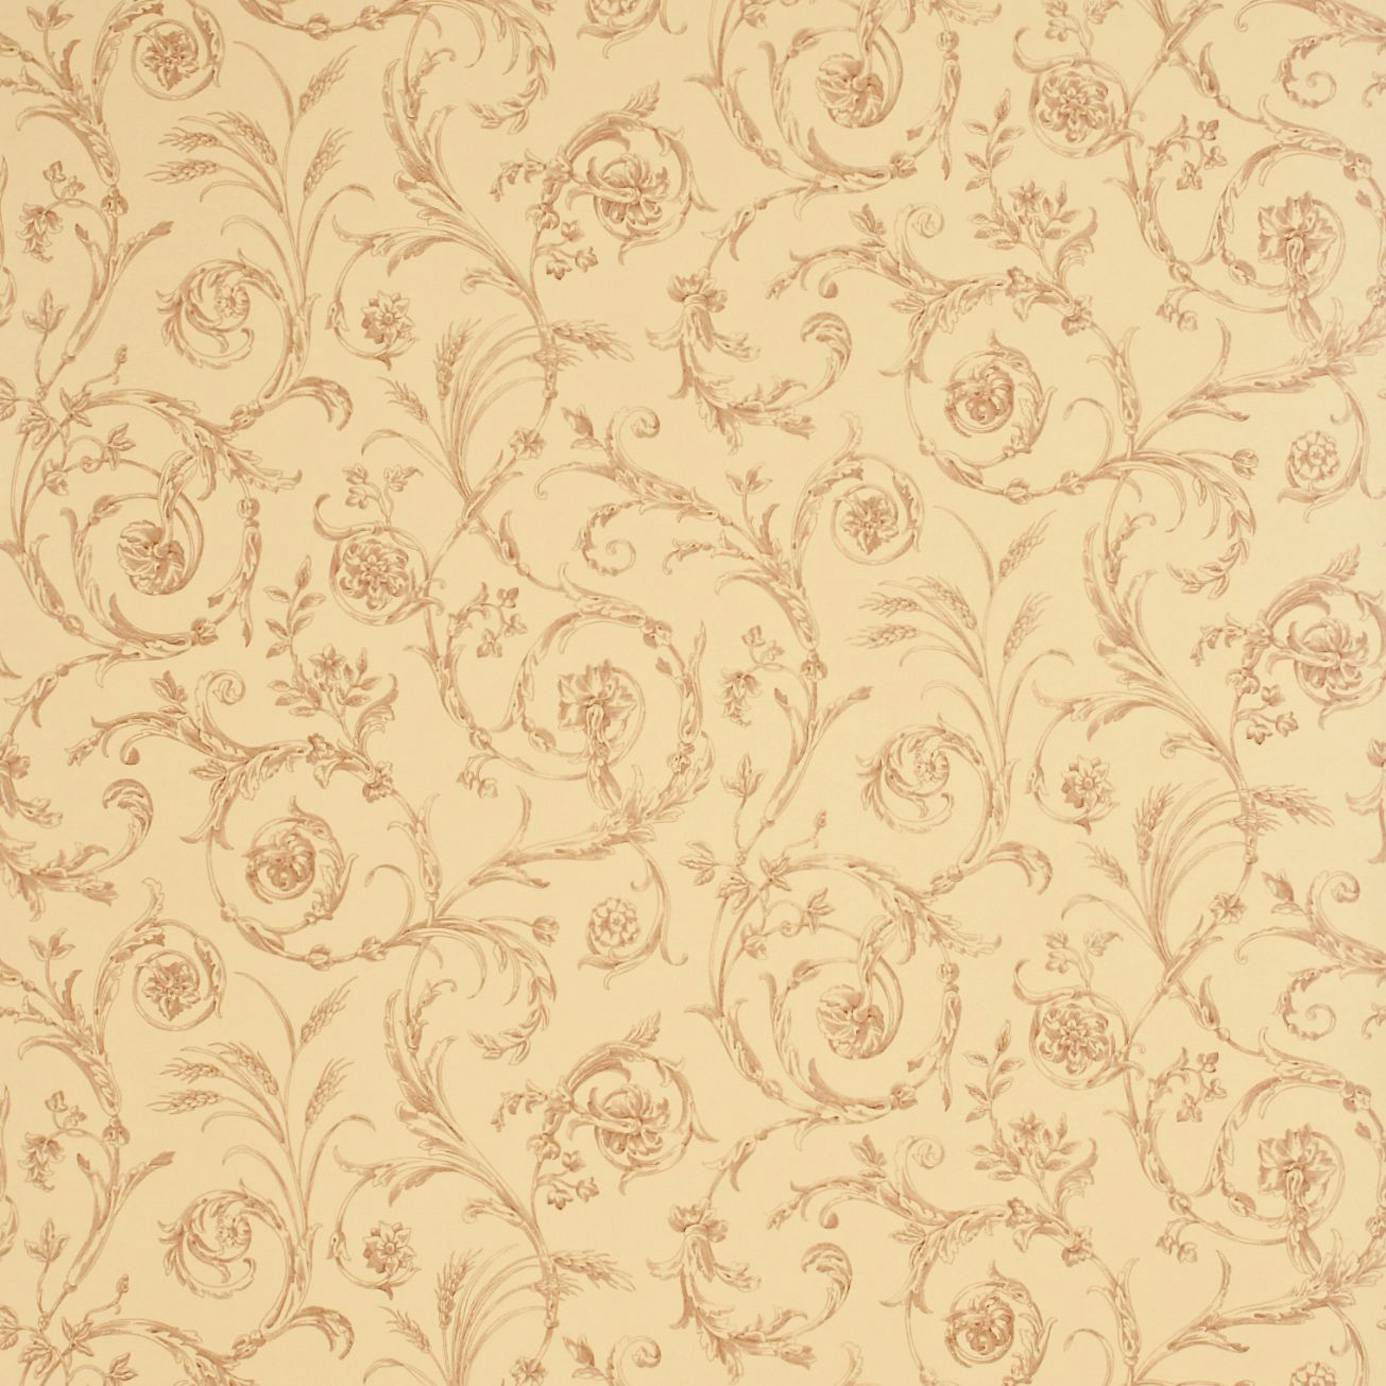 Art Nouveau Home Decor Scroll Co Ordinate Wallpaper Beige Cinnamon Degtsc102